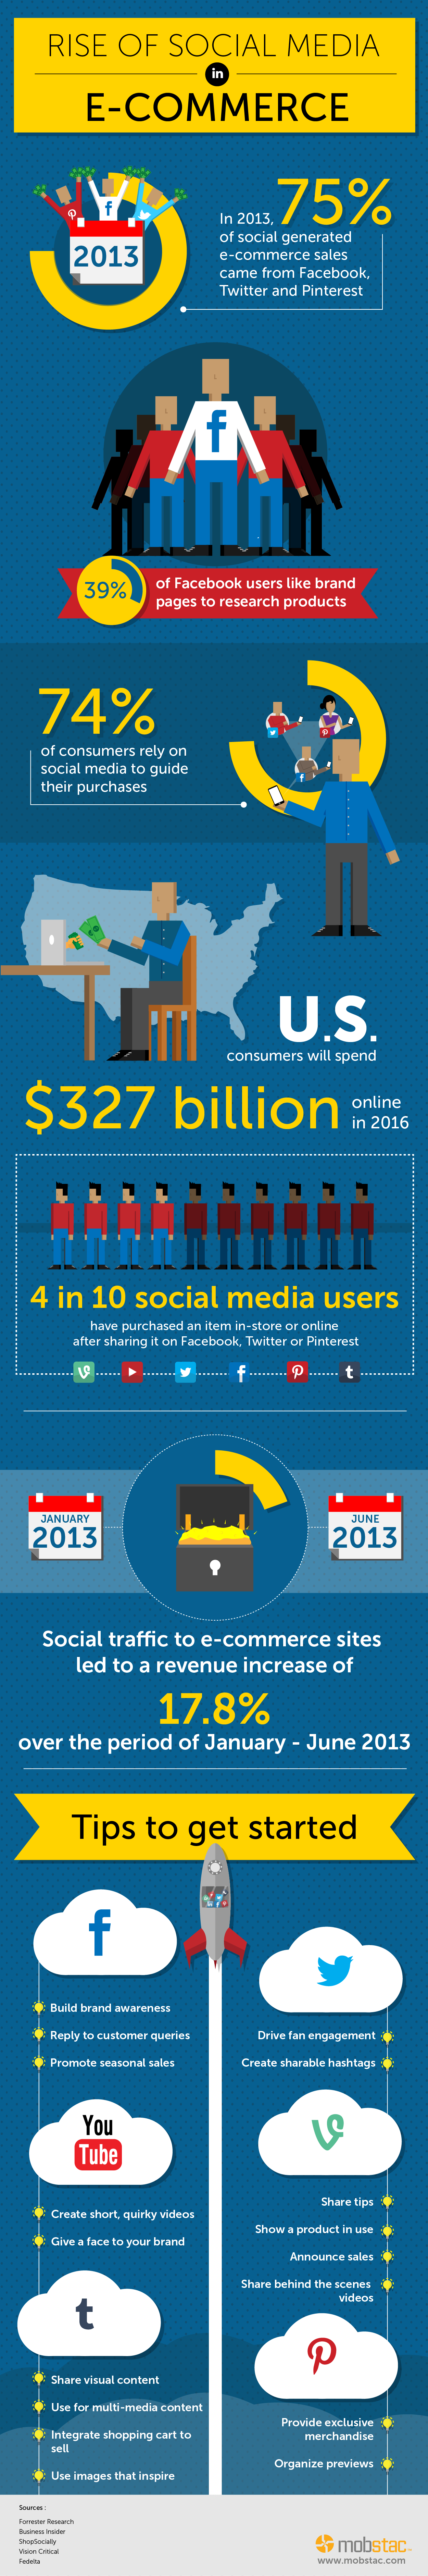 Social Media Impact on eCommerce Stores [INFOGRAPHIC]